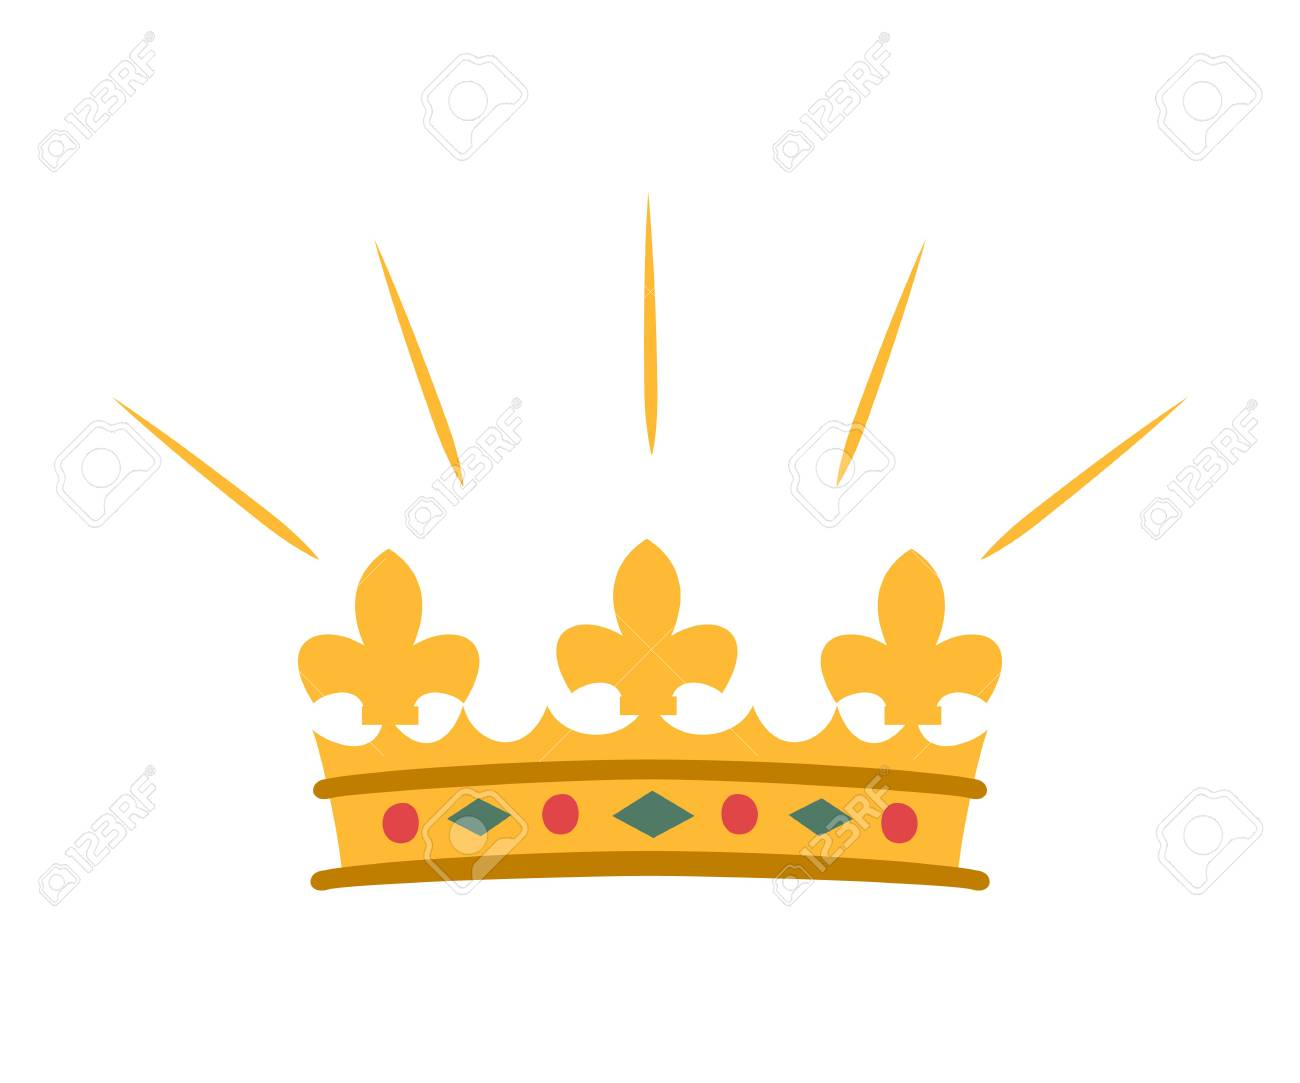 Cartoon Crown Icon On White Background Vector Illustration Royalty Free Cliparts Vectors And Stock Illustration Image 95455081 Crown icon cartoon black and white vector. cartoon crown icon on white background vector illustration